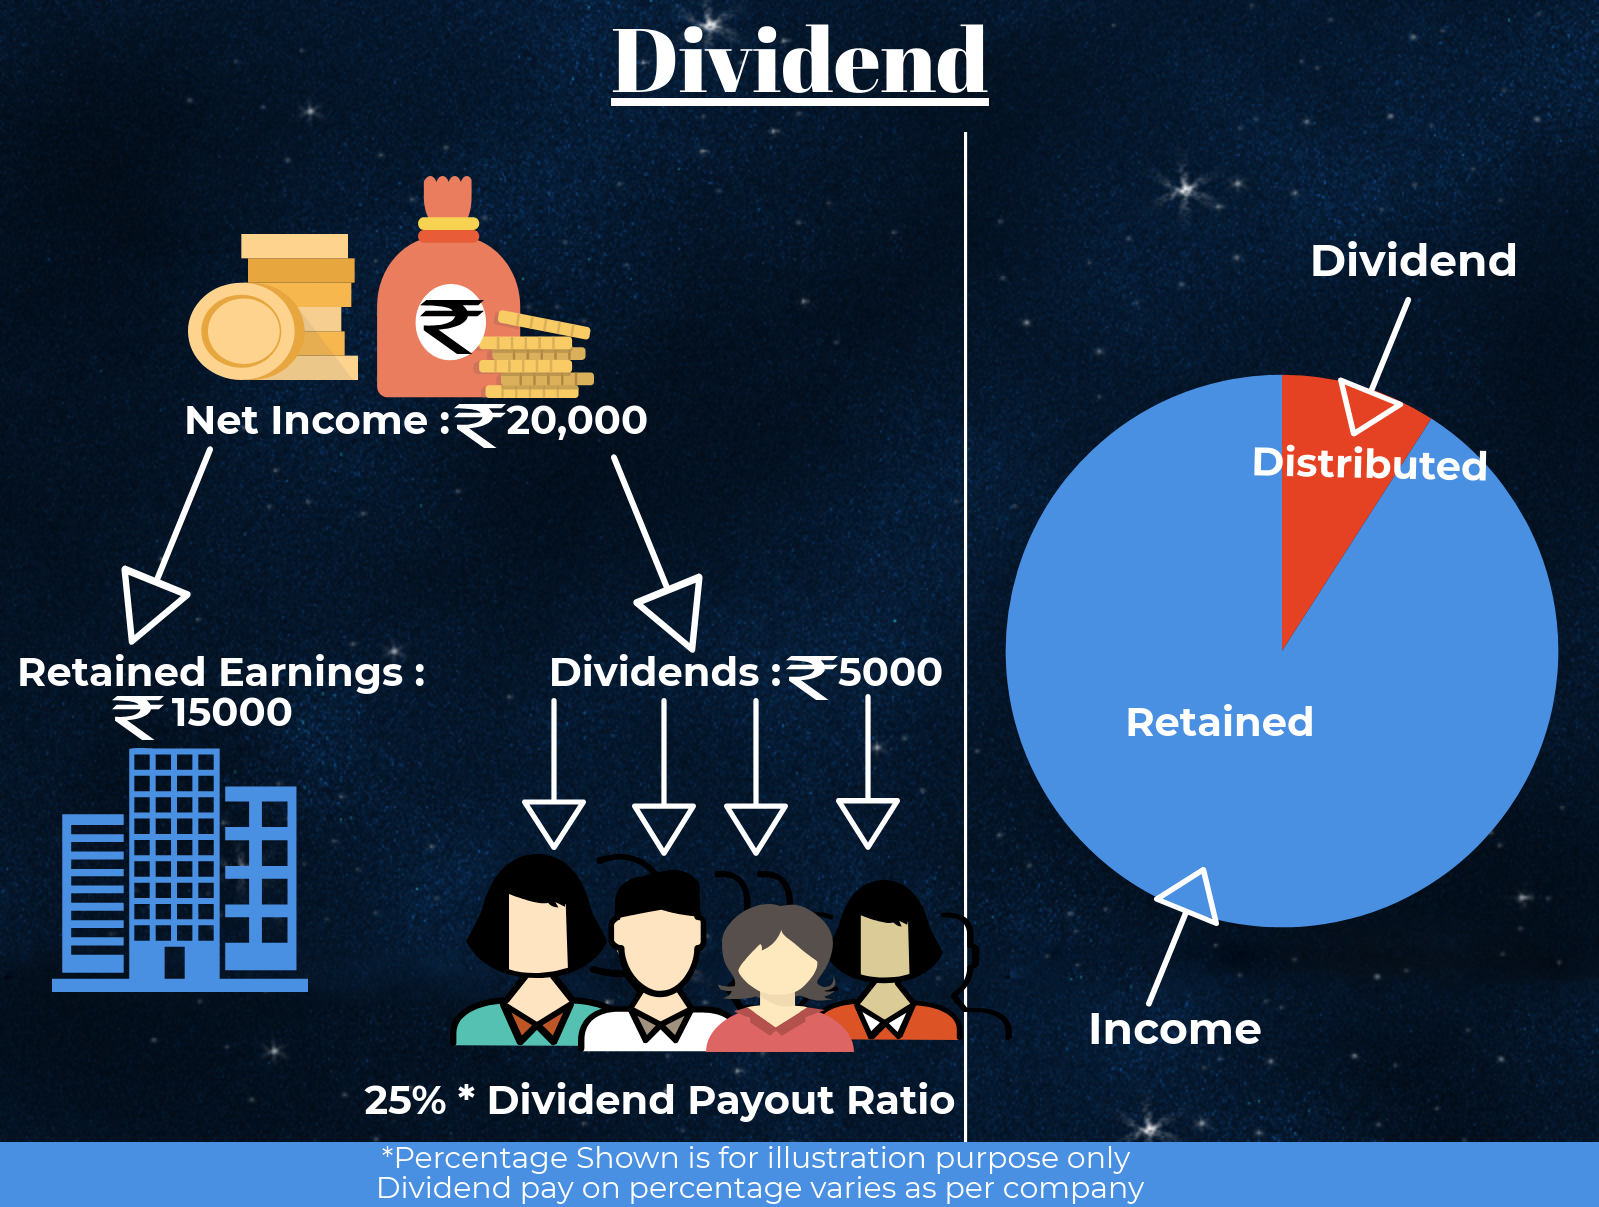 How Dividends Can Impact Stock